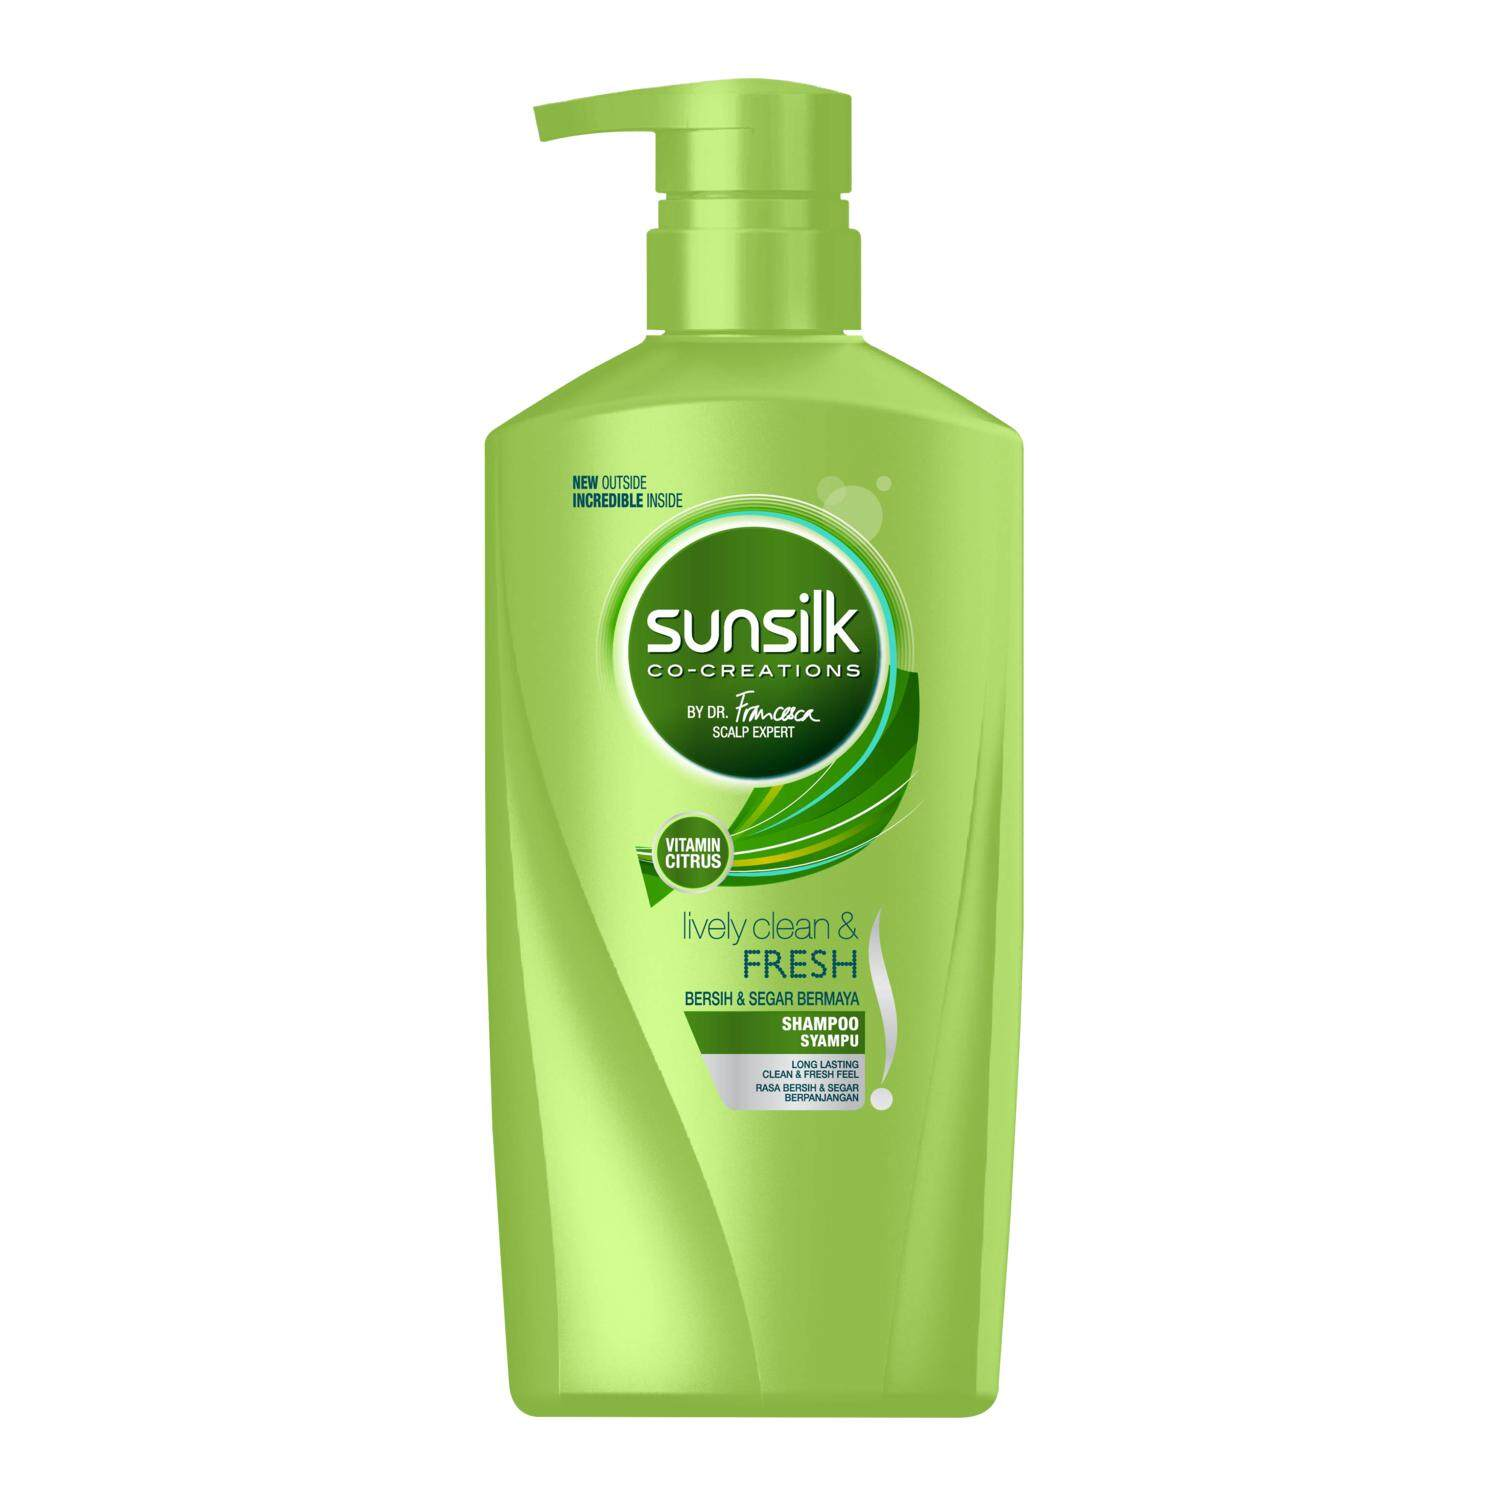 Sunsilk Co-Creations Lively Clean & Fresh Shampoo 650ml